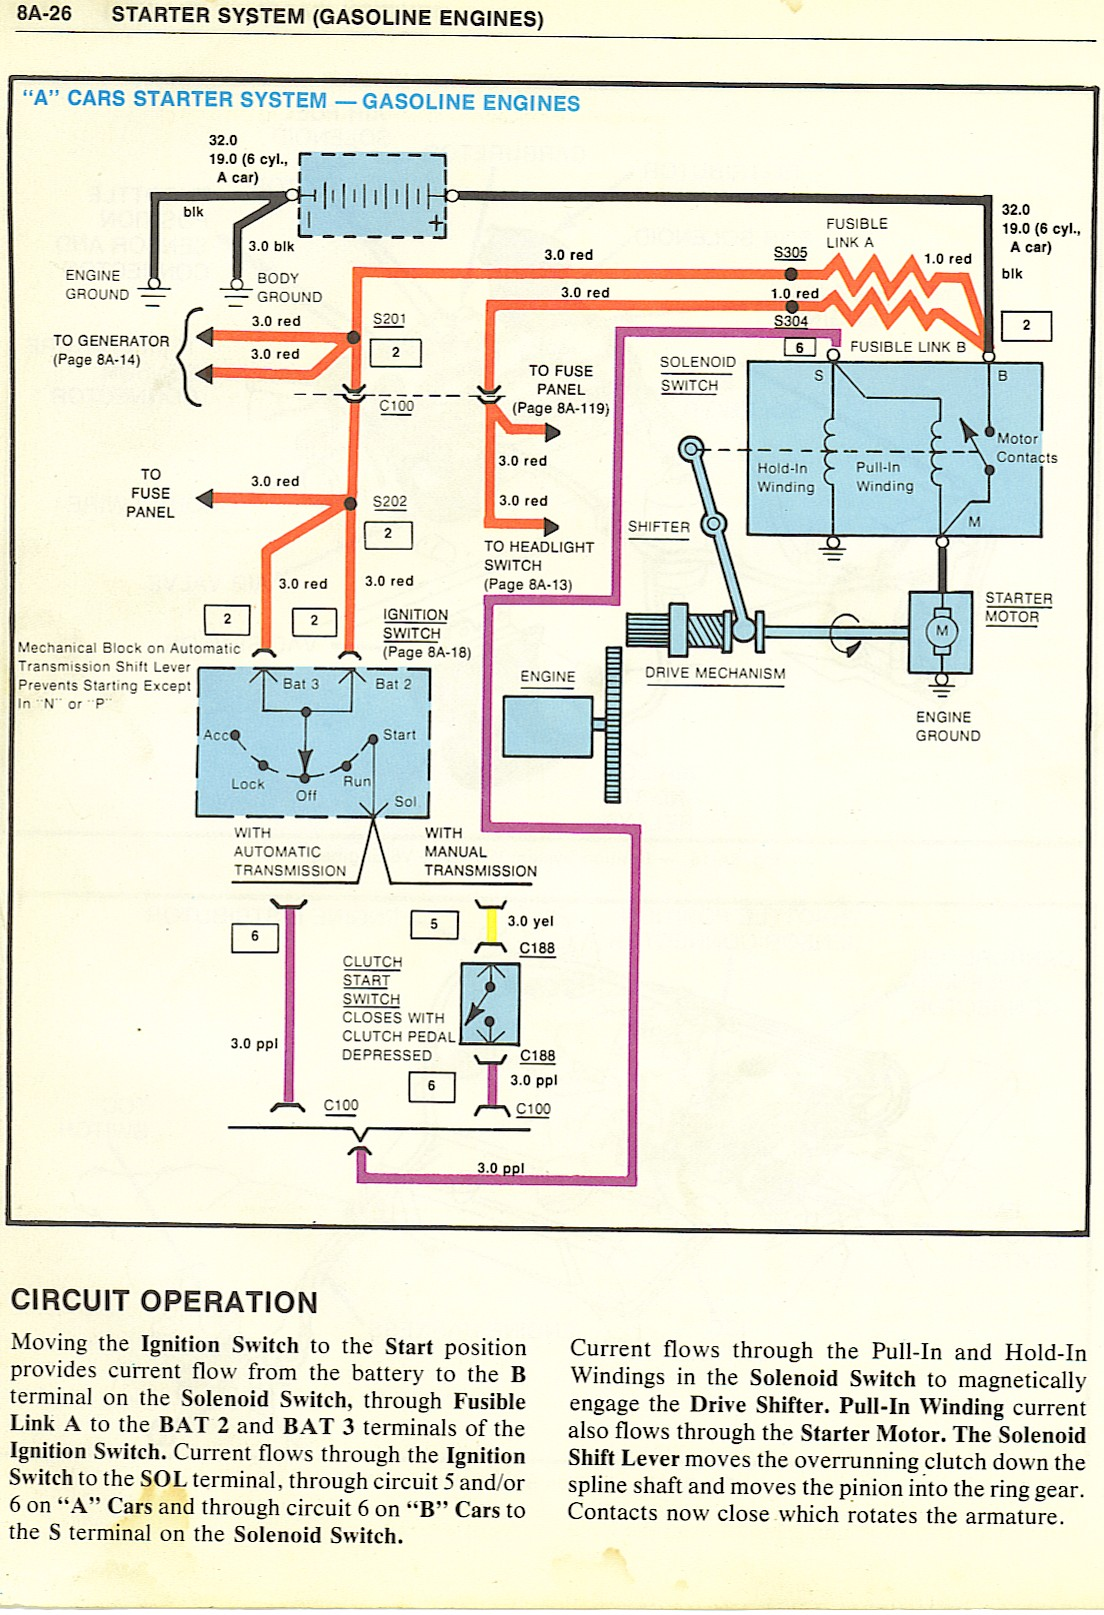 1967 Oldsmobile Cutlass Wiring Diagram 68 Oldsmobile Cutlass Wiring